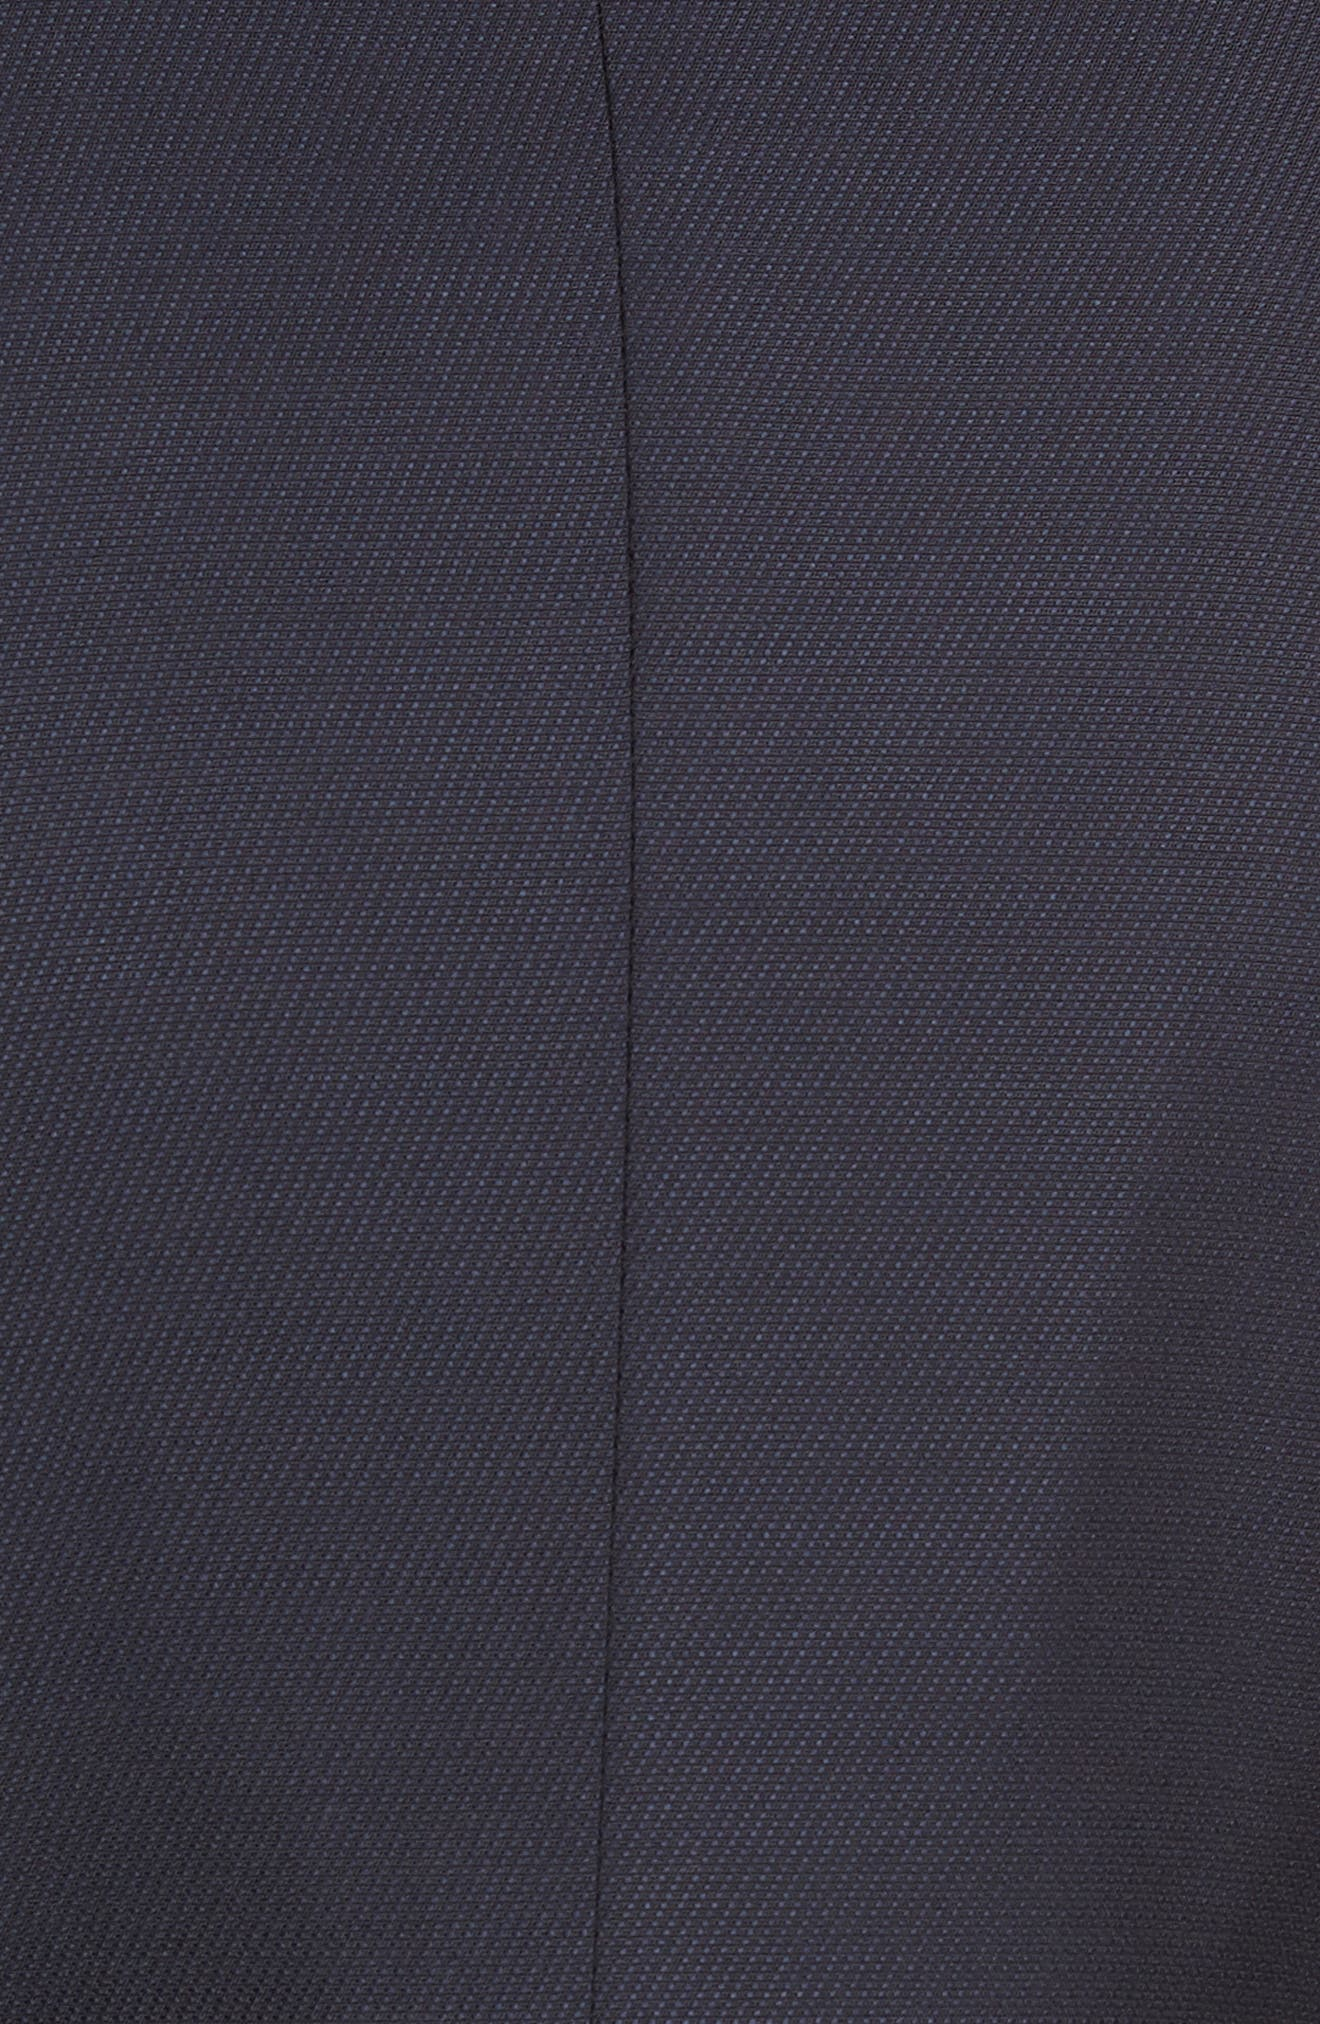 Slim Fit Suit Trousers,                             Alternate thumbnail 2, color,                             NAVY